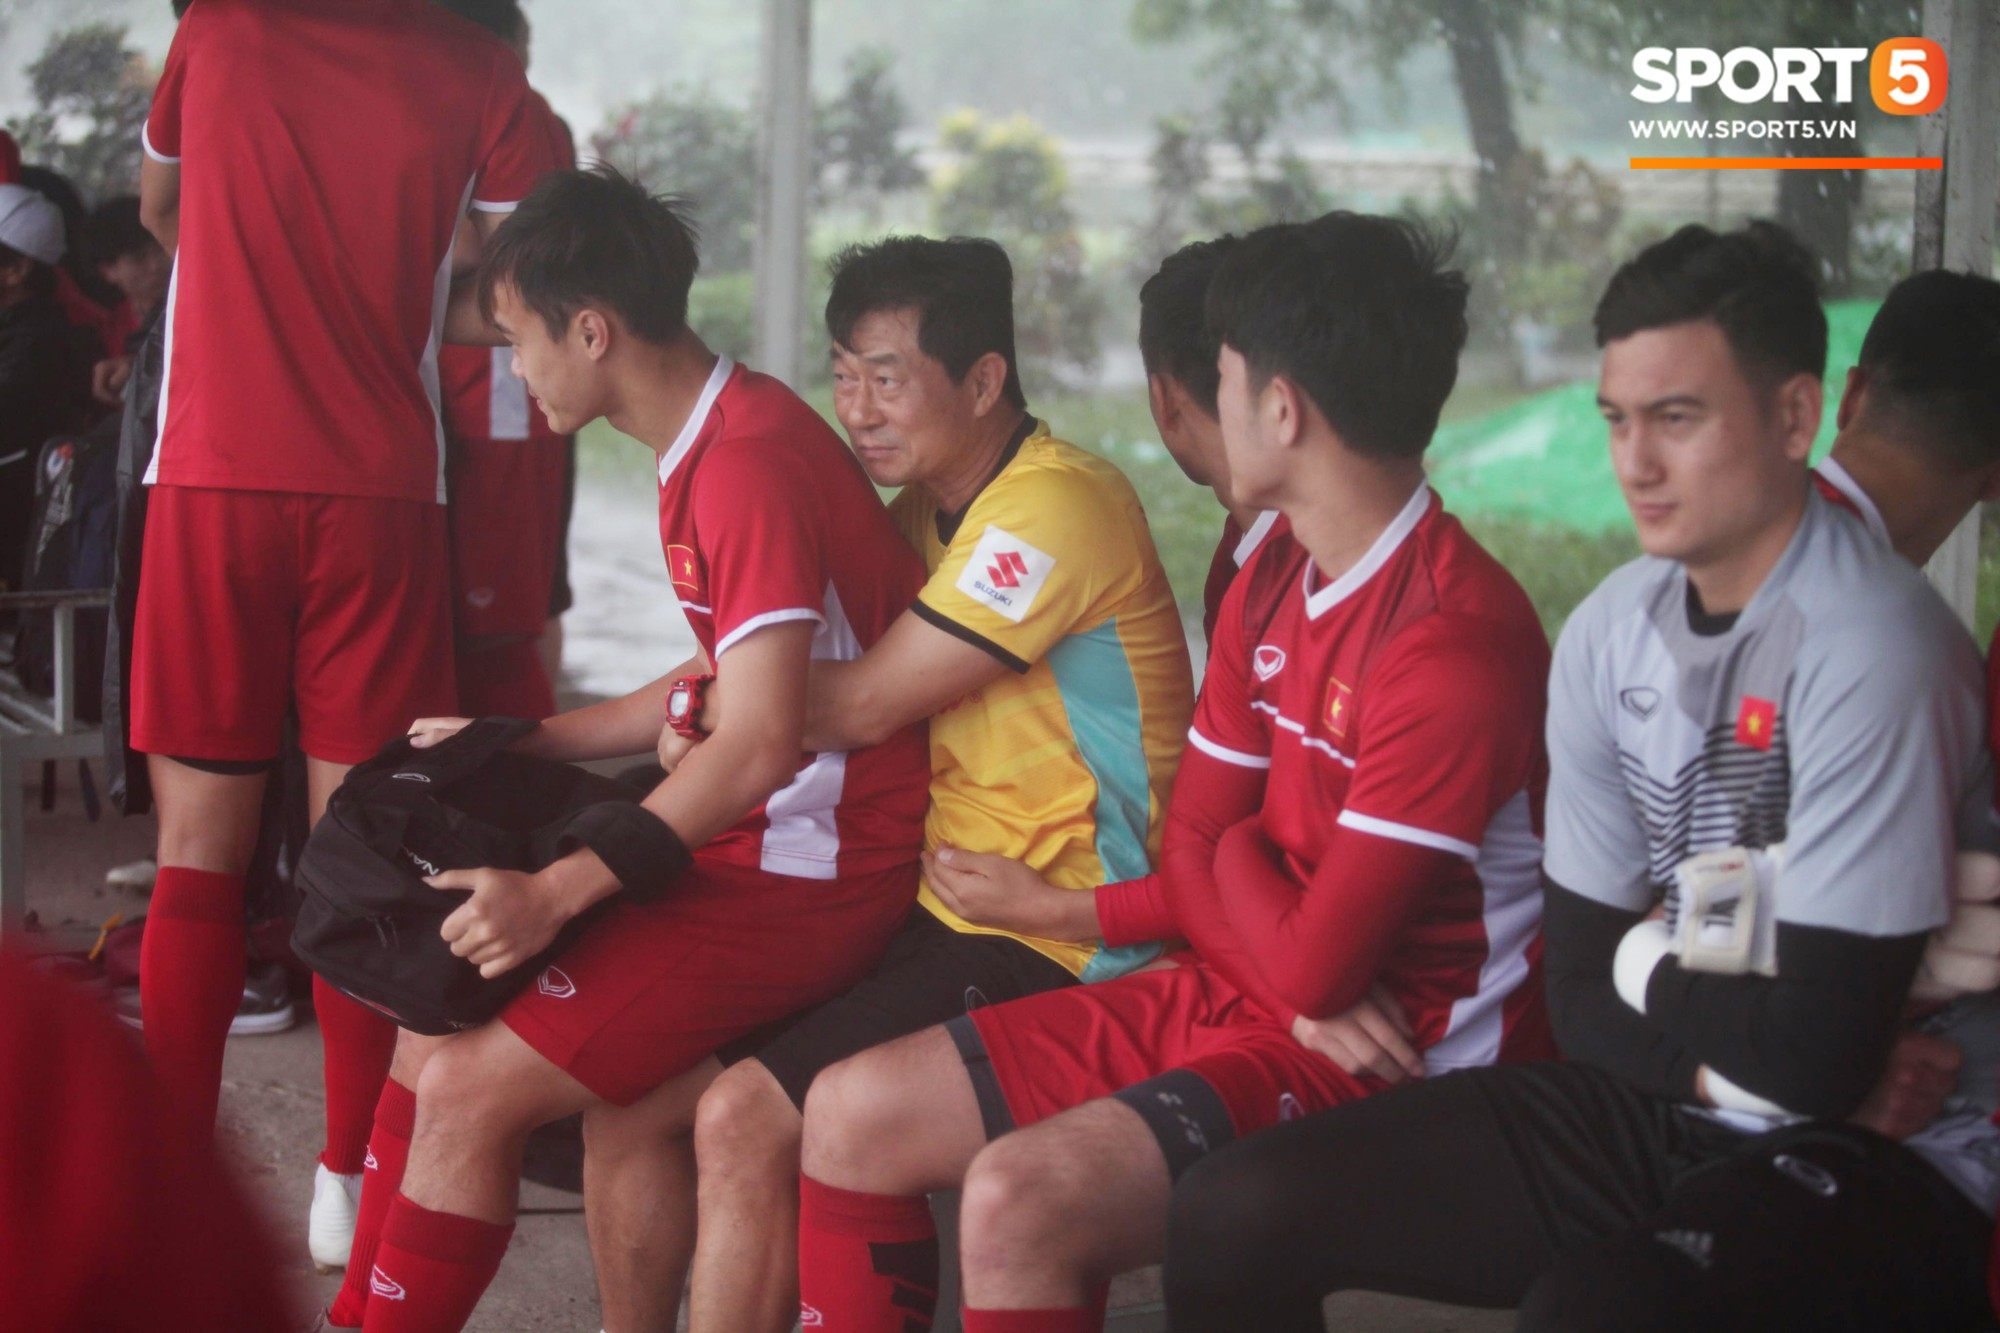 Vice-team against Vietnam: The weather must also be known when training and competition - Picture 2.